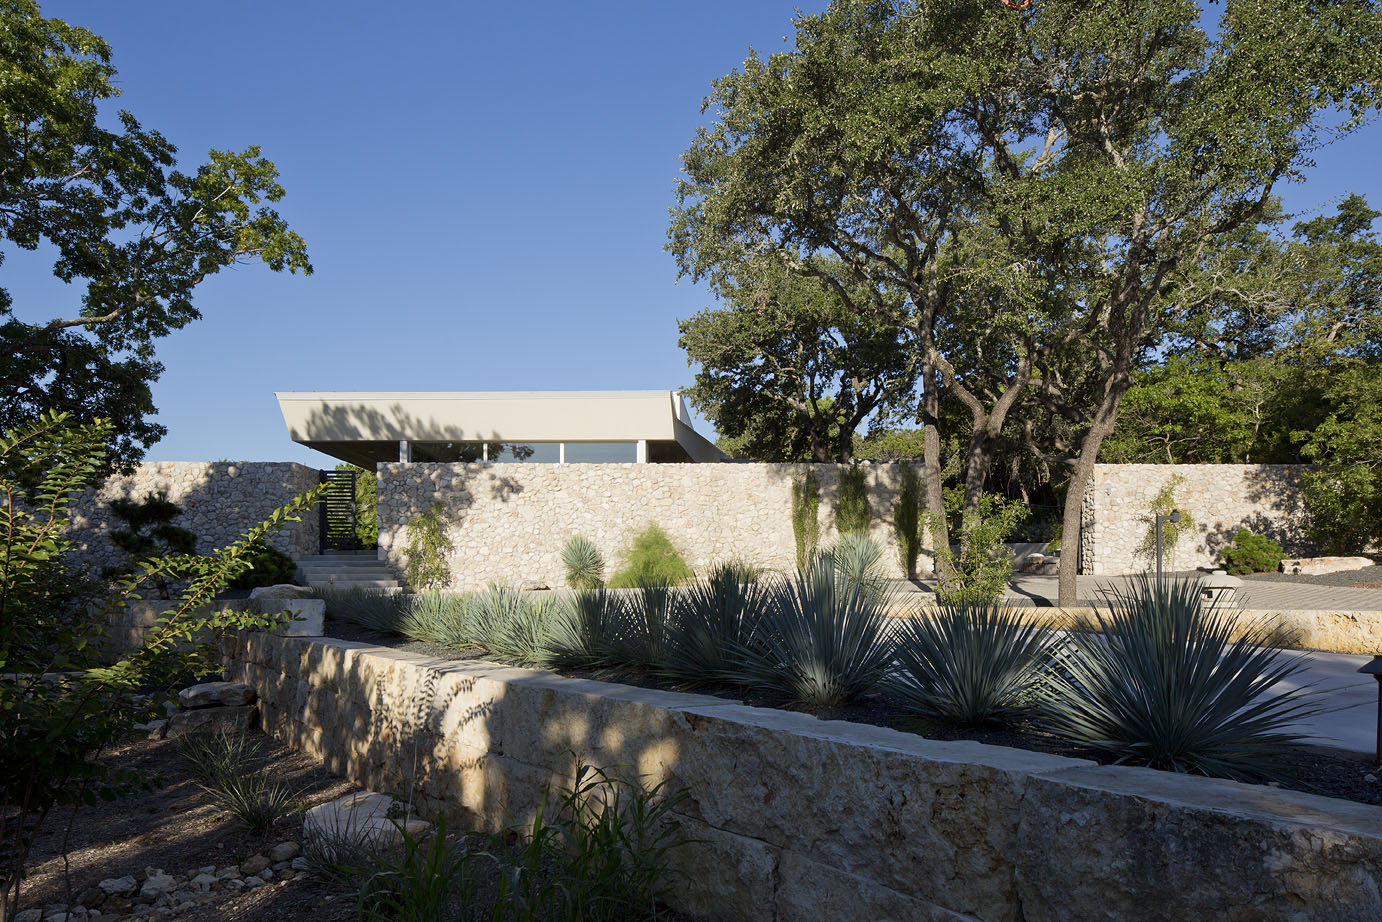 Locally sourced limestone block and stone provide structure and privacy for this estate.